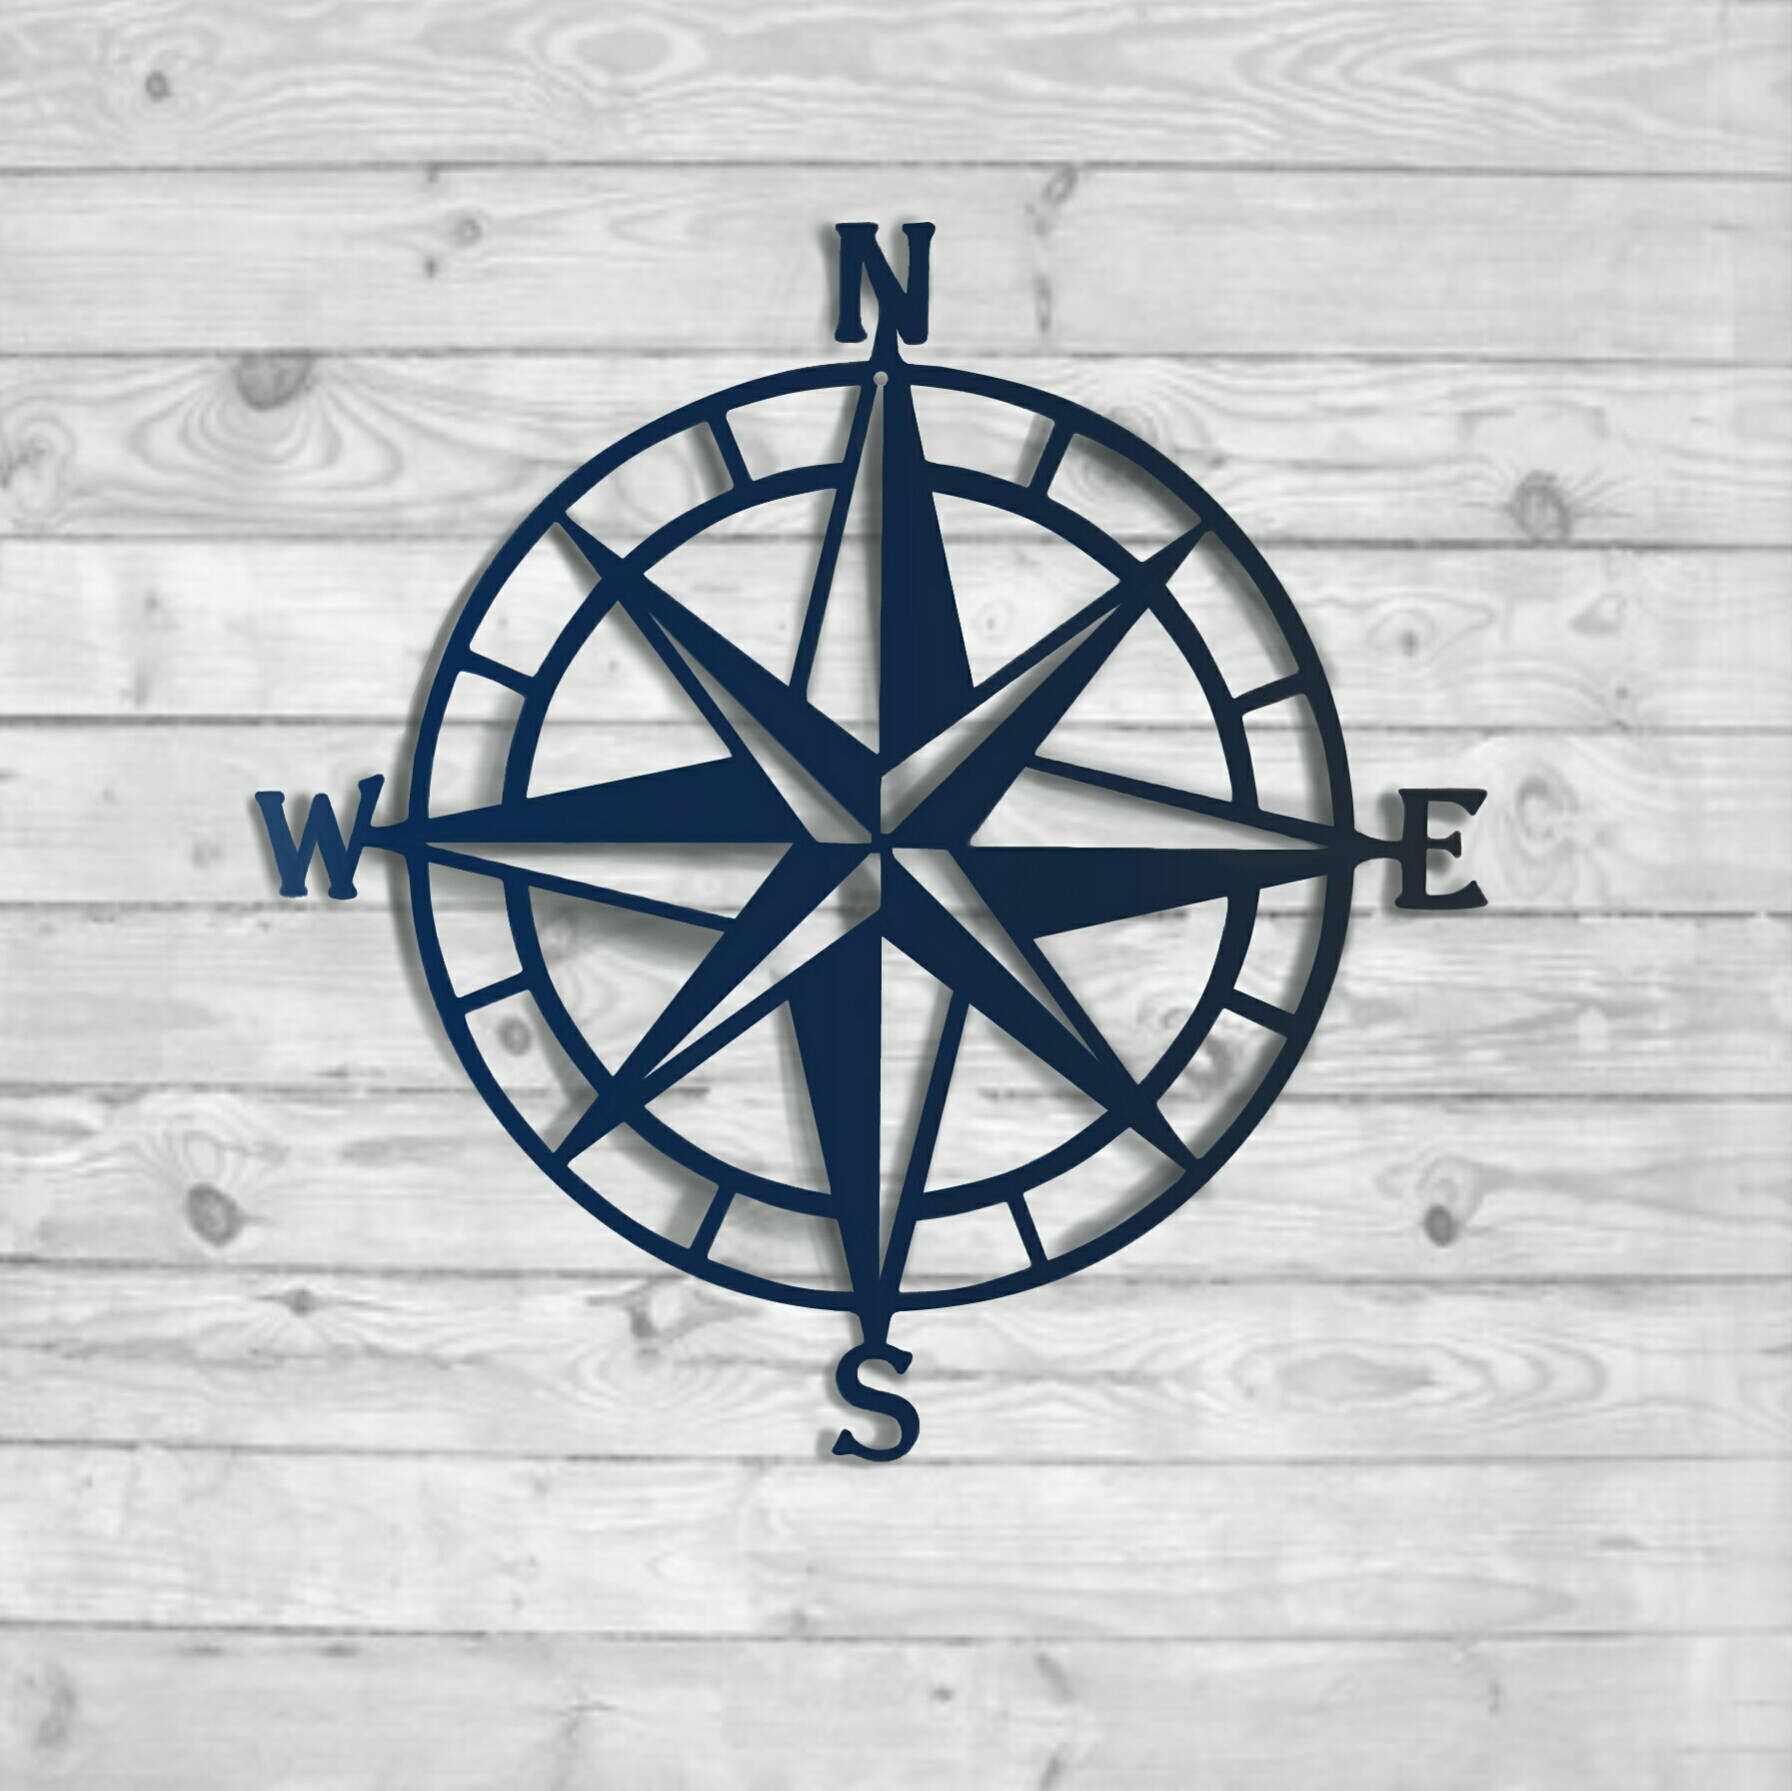 20 Best Collection Of Outdoor Metal Wall Compass throughout Outdoor Metal Wall Compass (Image 2 of 30)